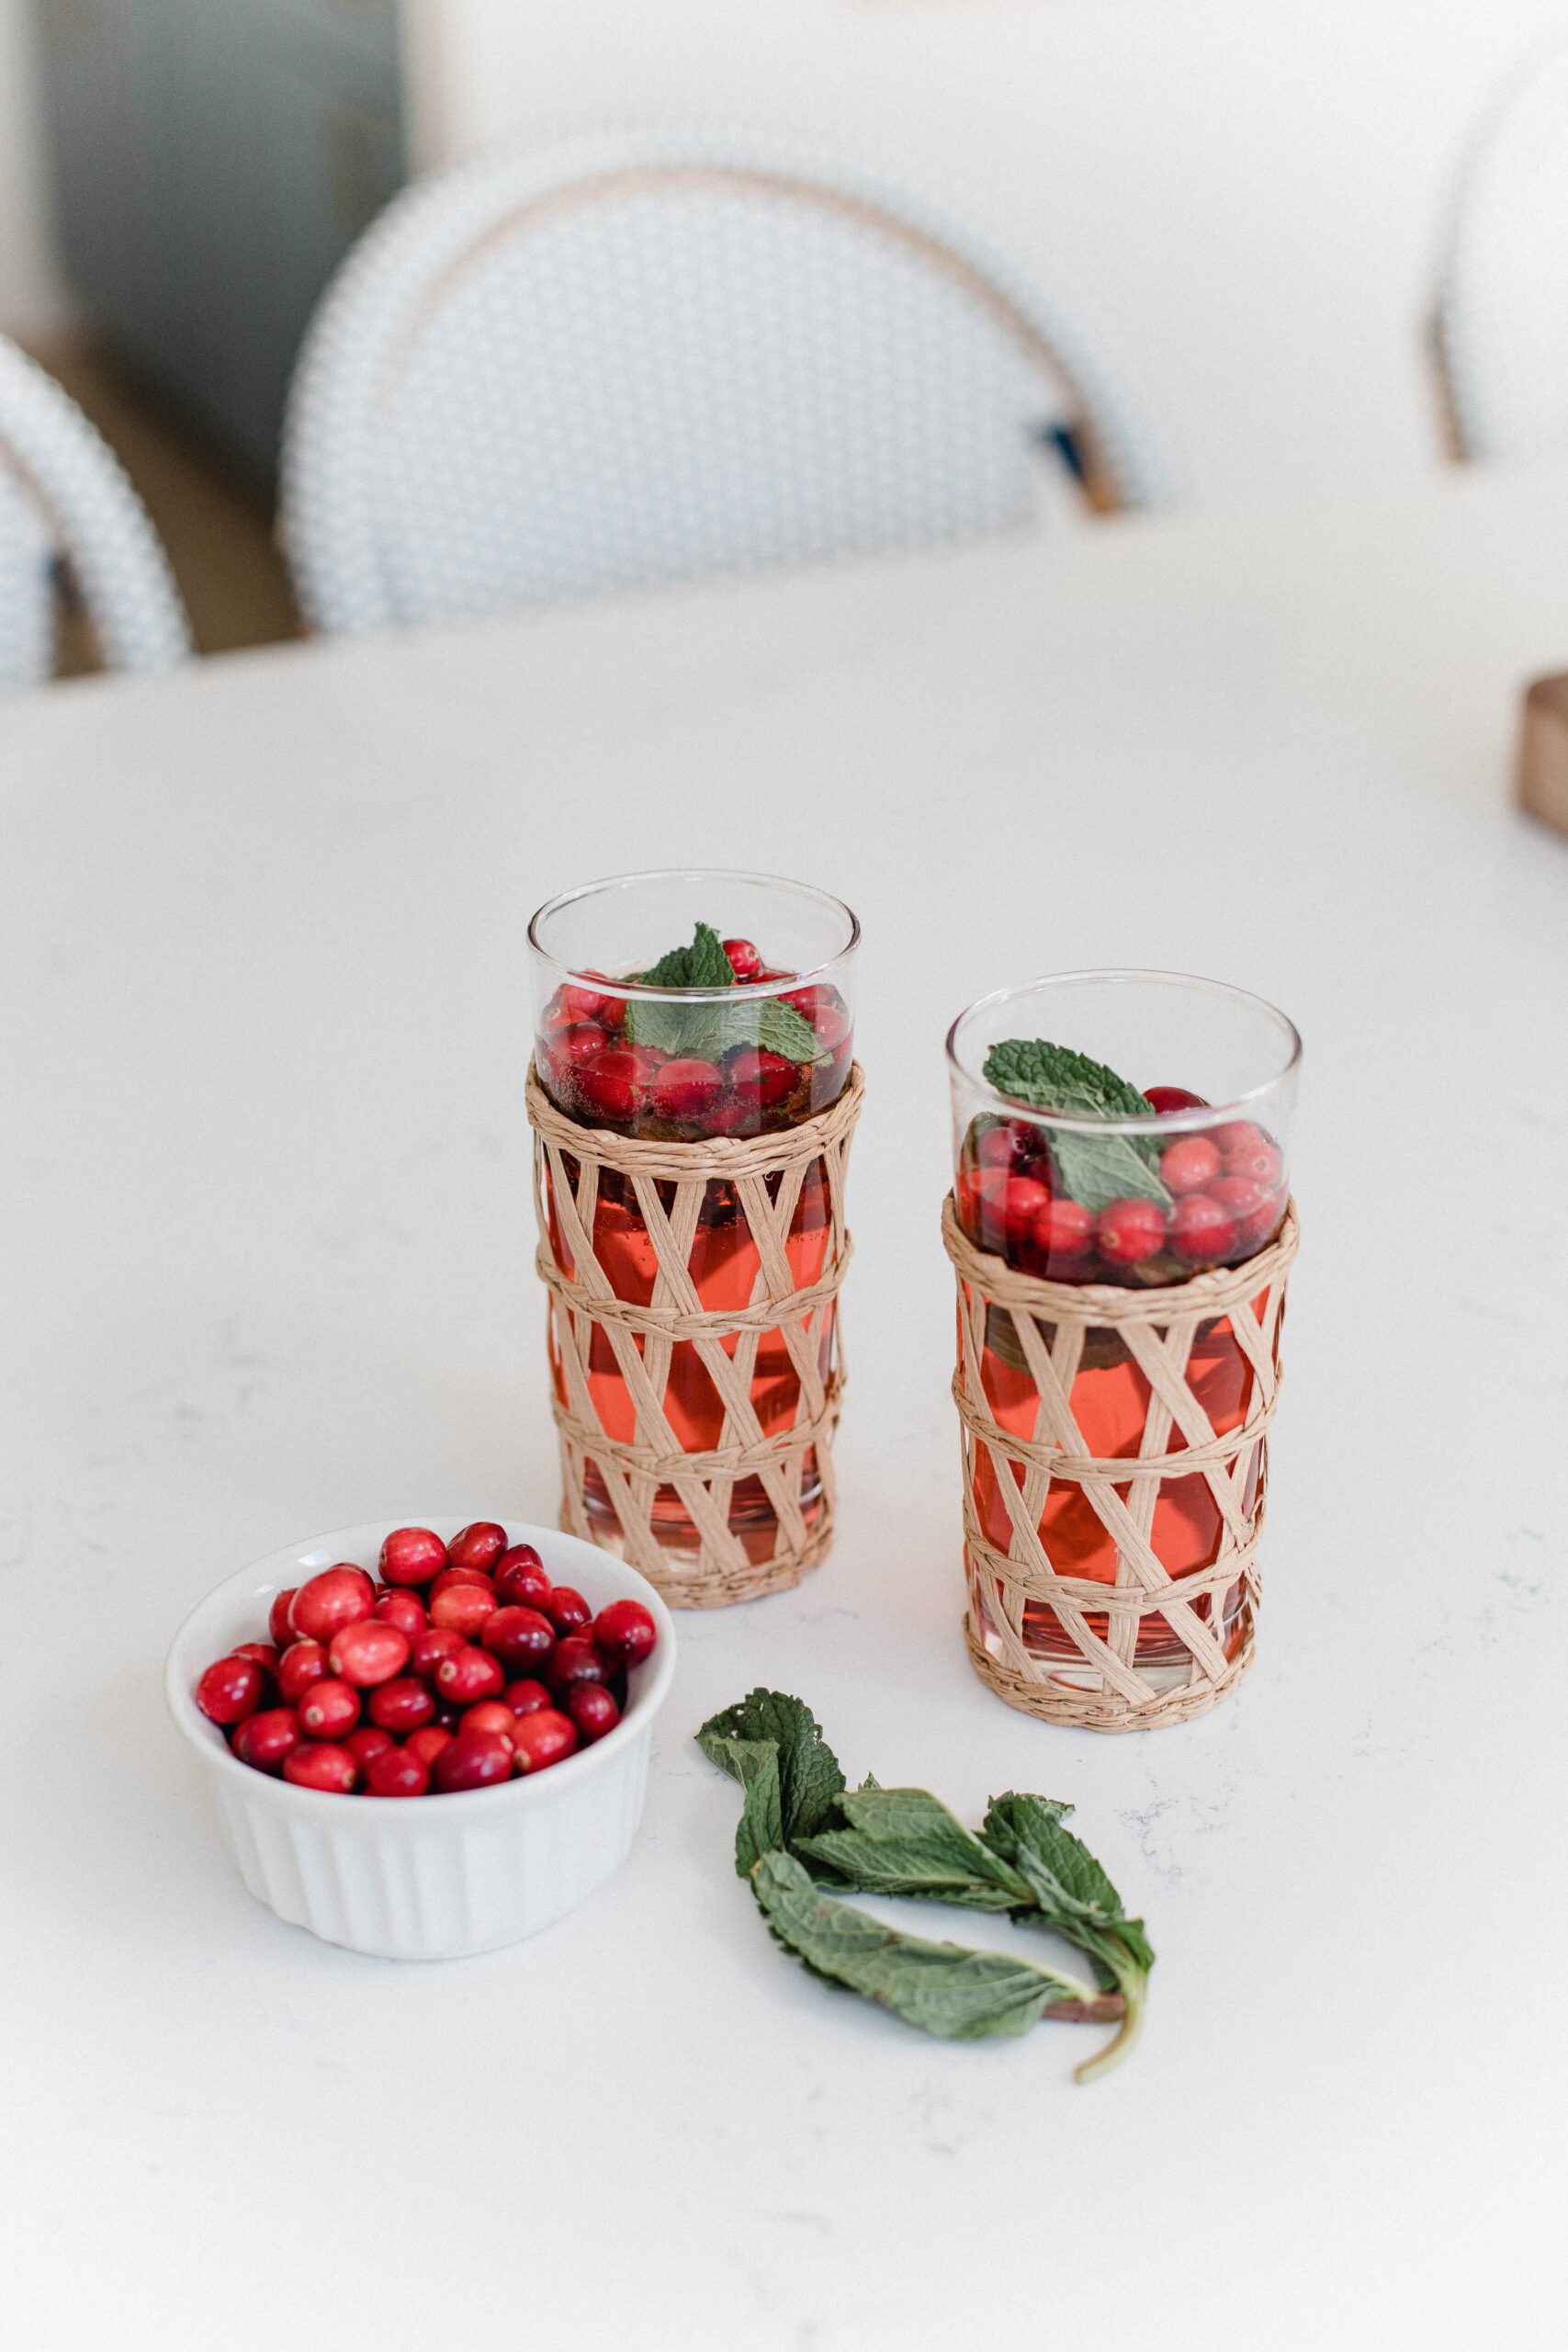 Looking for a festive holiday drink? This Cranberry Mint Lime Spritzer by Connecticut life and style blogger Lauren McBride is easy and delicious.